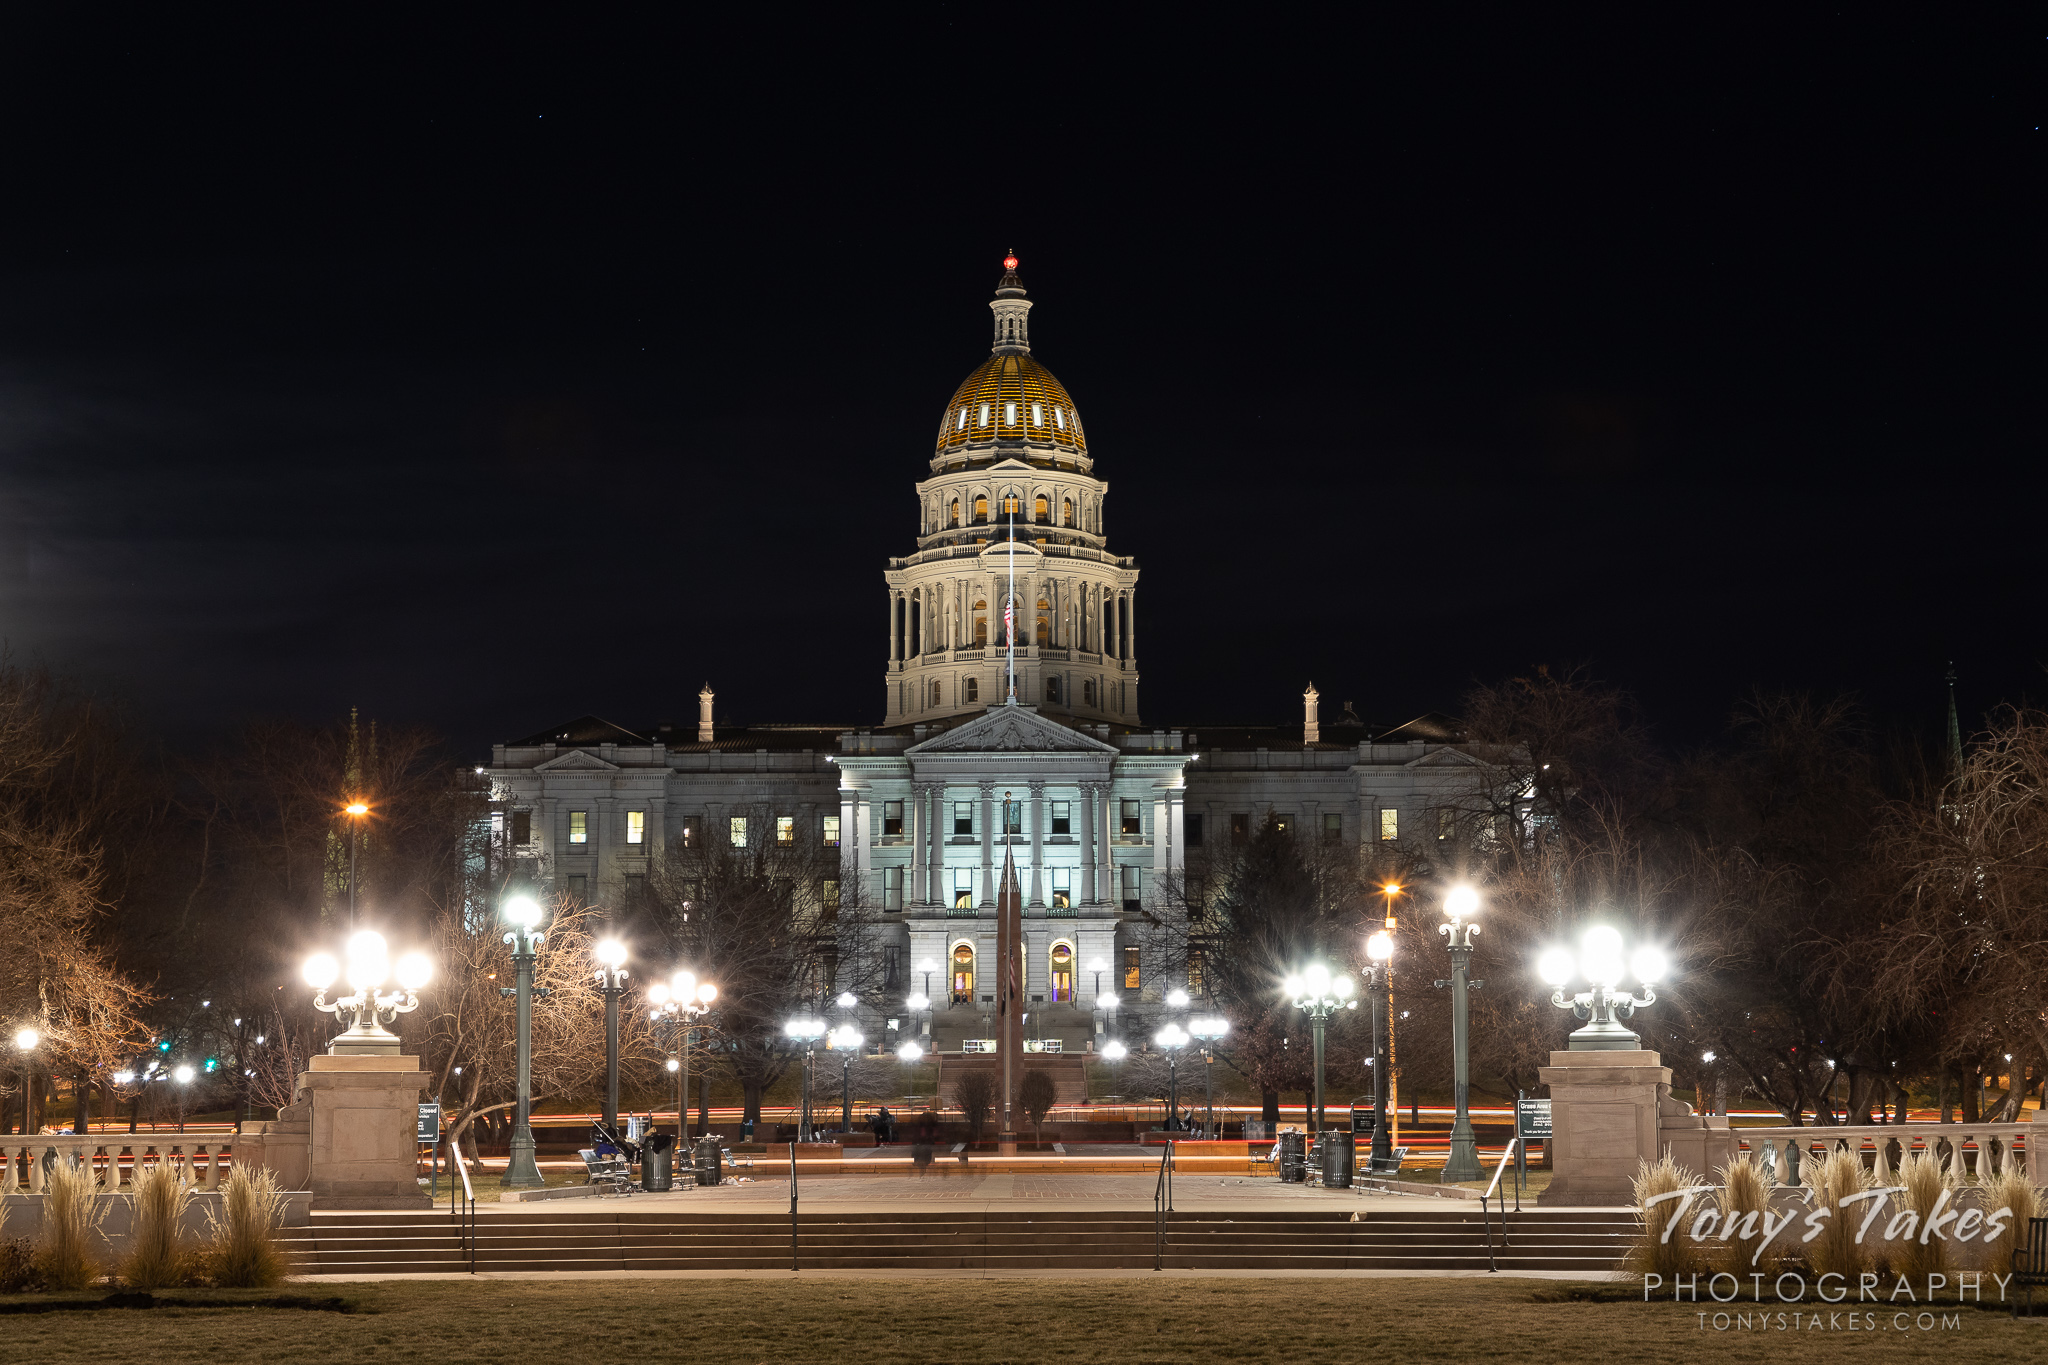 Colorado's state capitol building at night